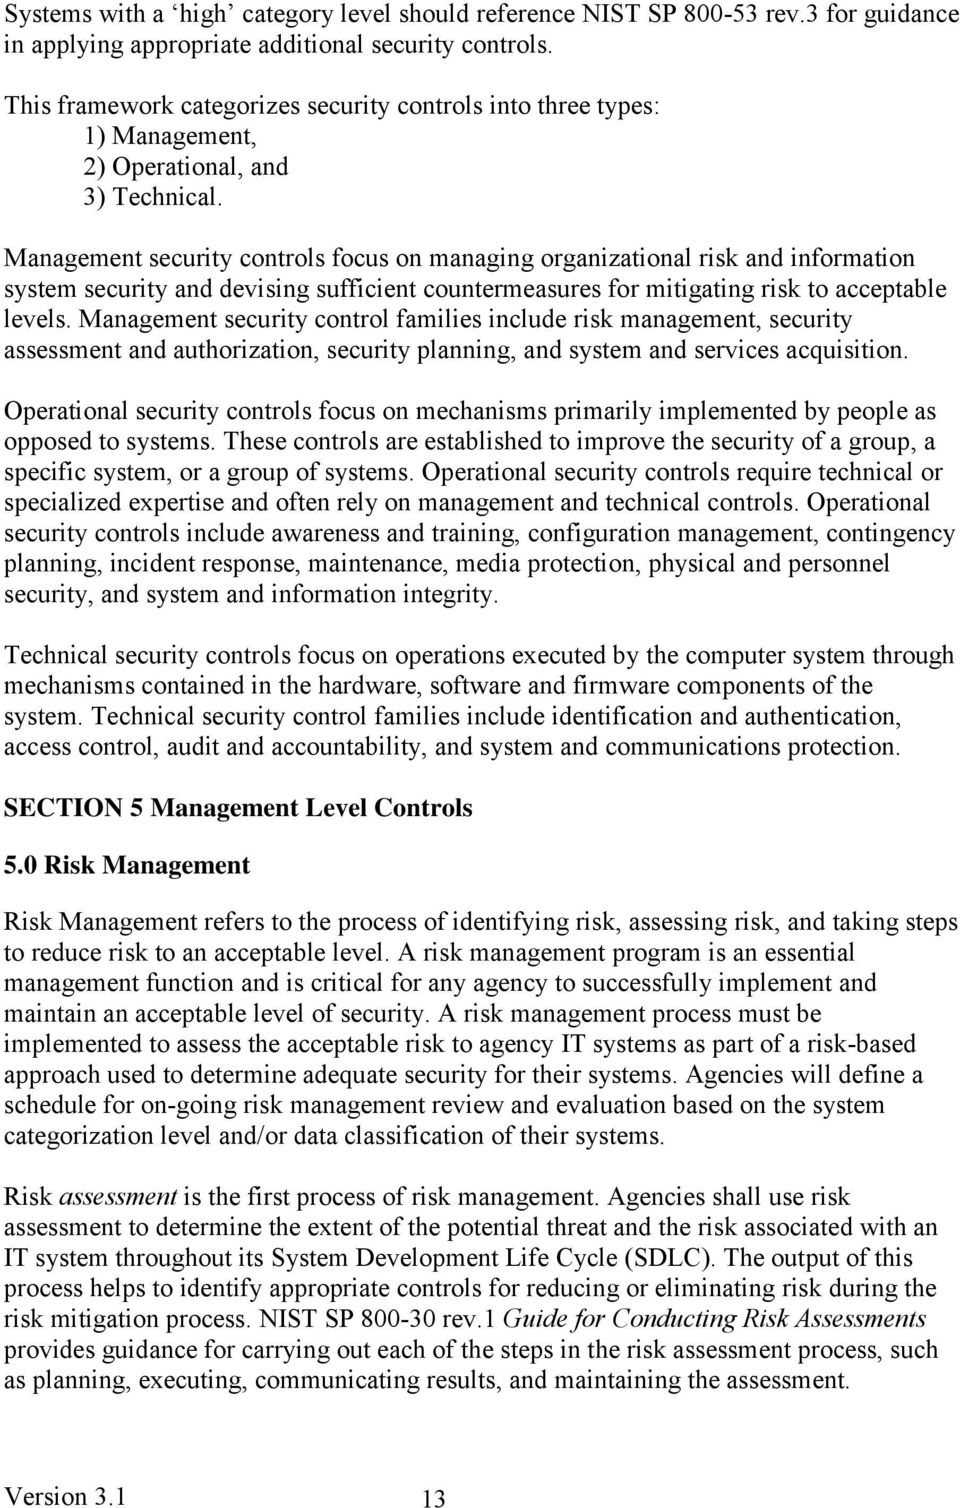 Management security controls focus on managing organizational risk and information system security and devising sufficient countermeasures for mitigating risk to acceptable levels.